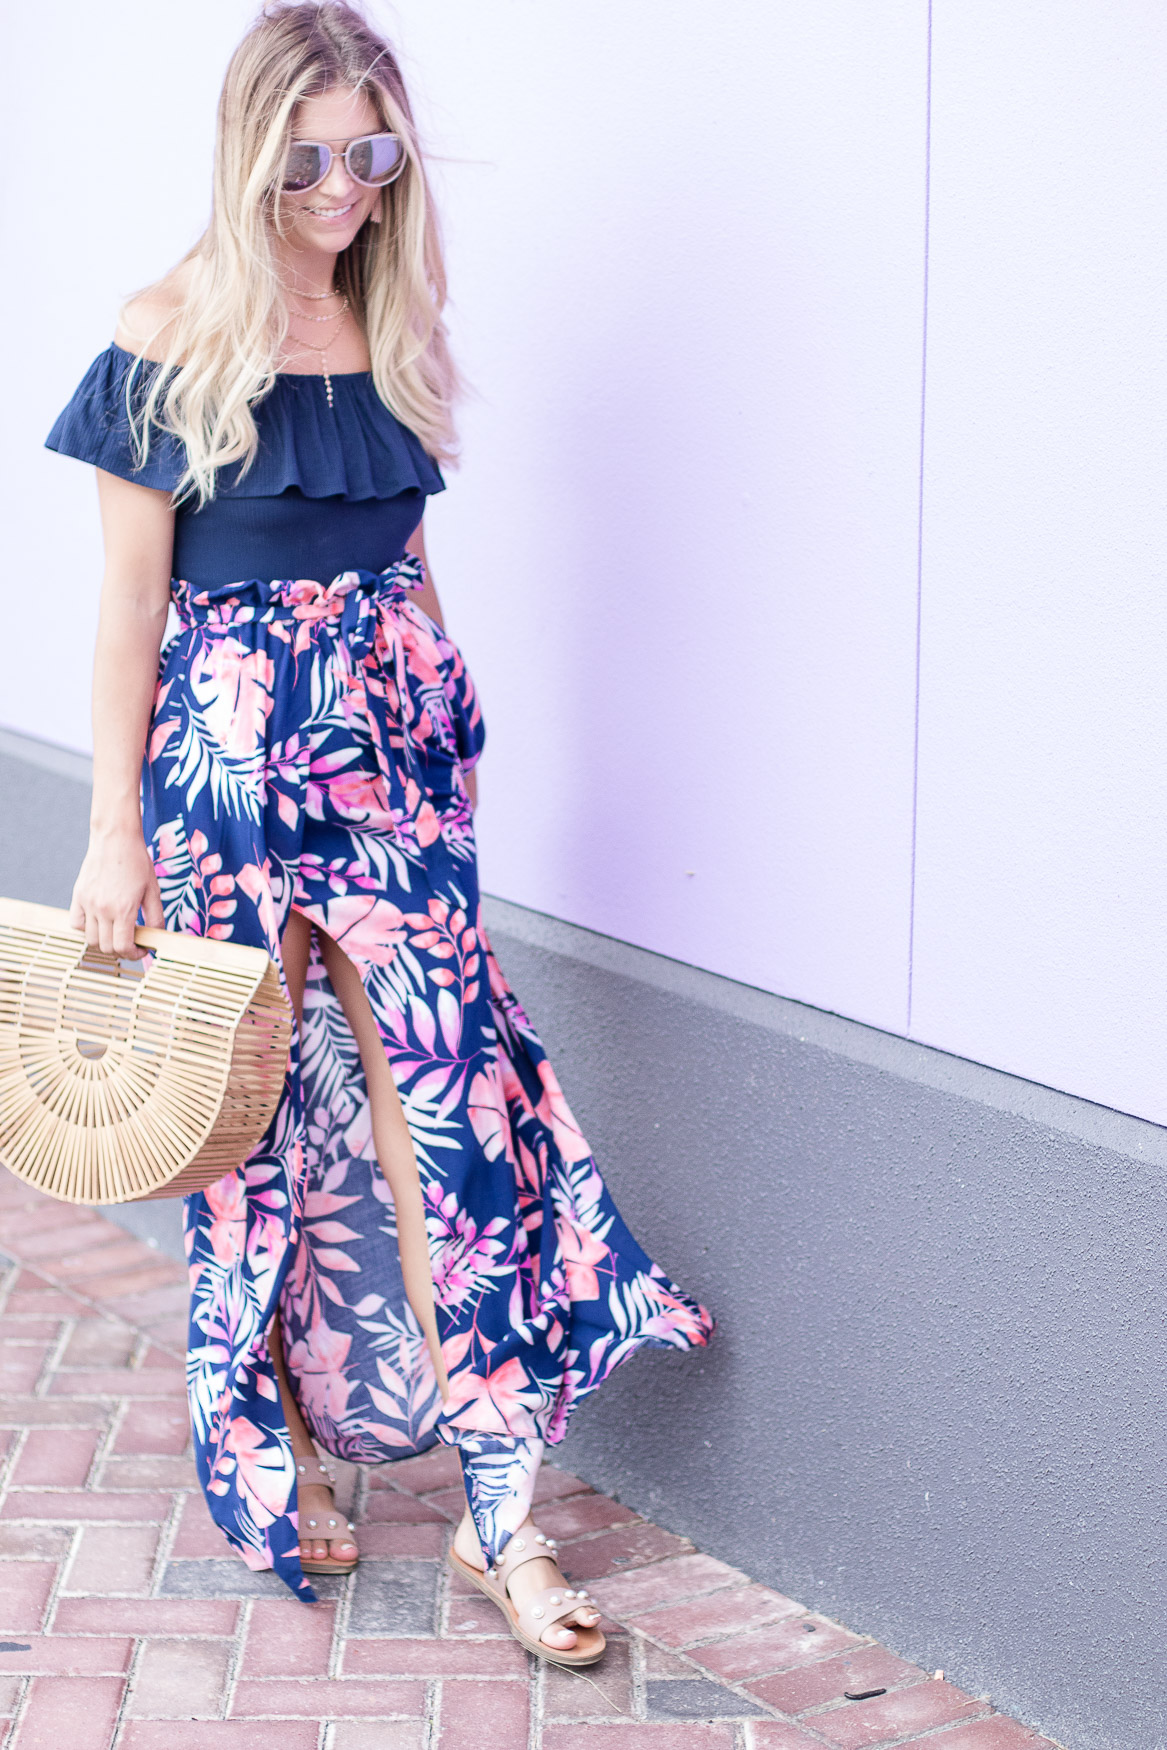 Floral Asos Skirt with body suit and bamboo bag in St. Thomas